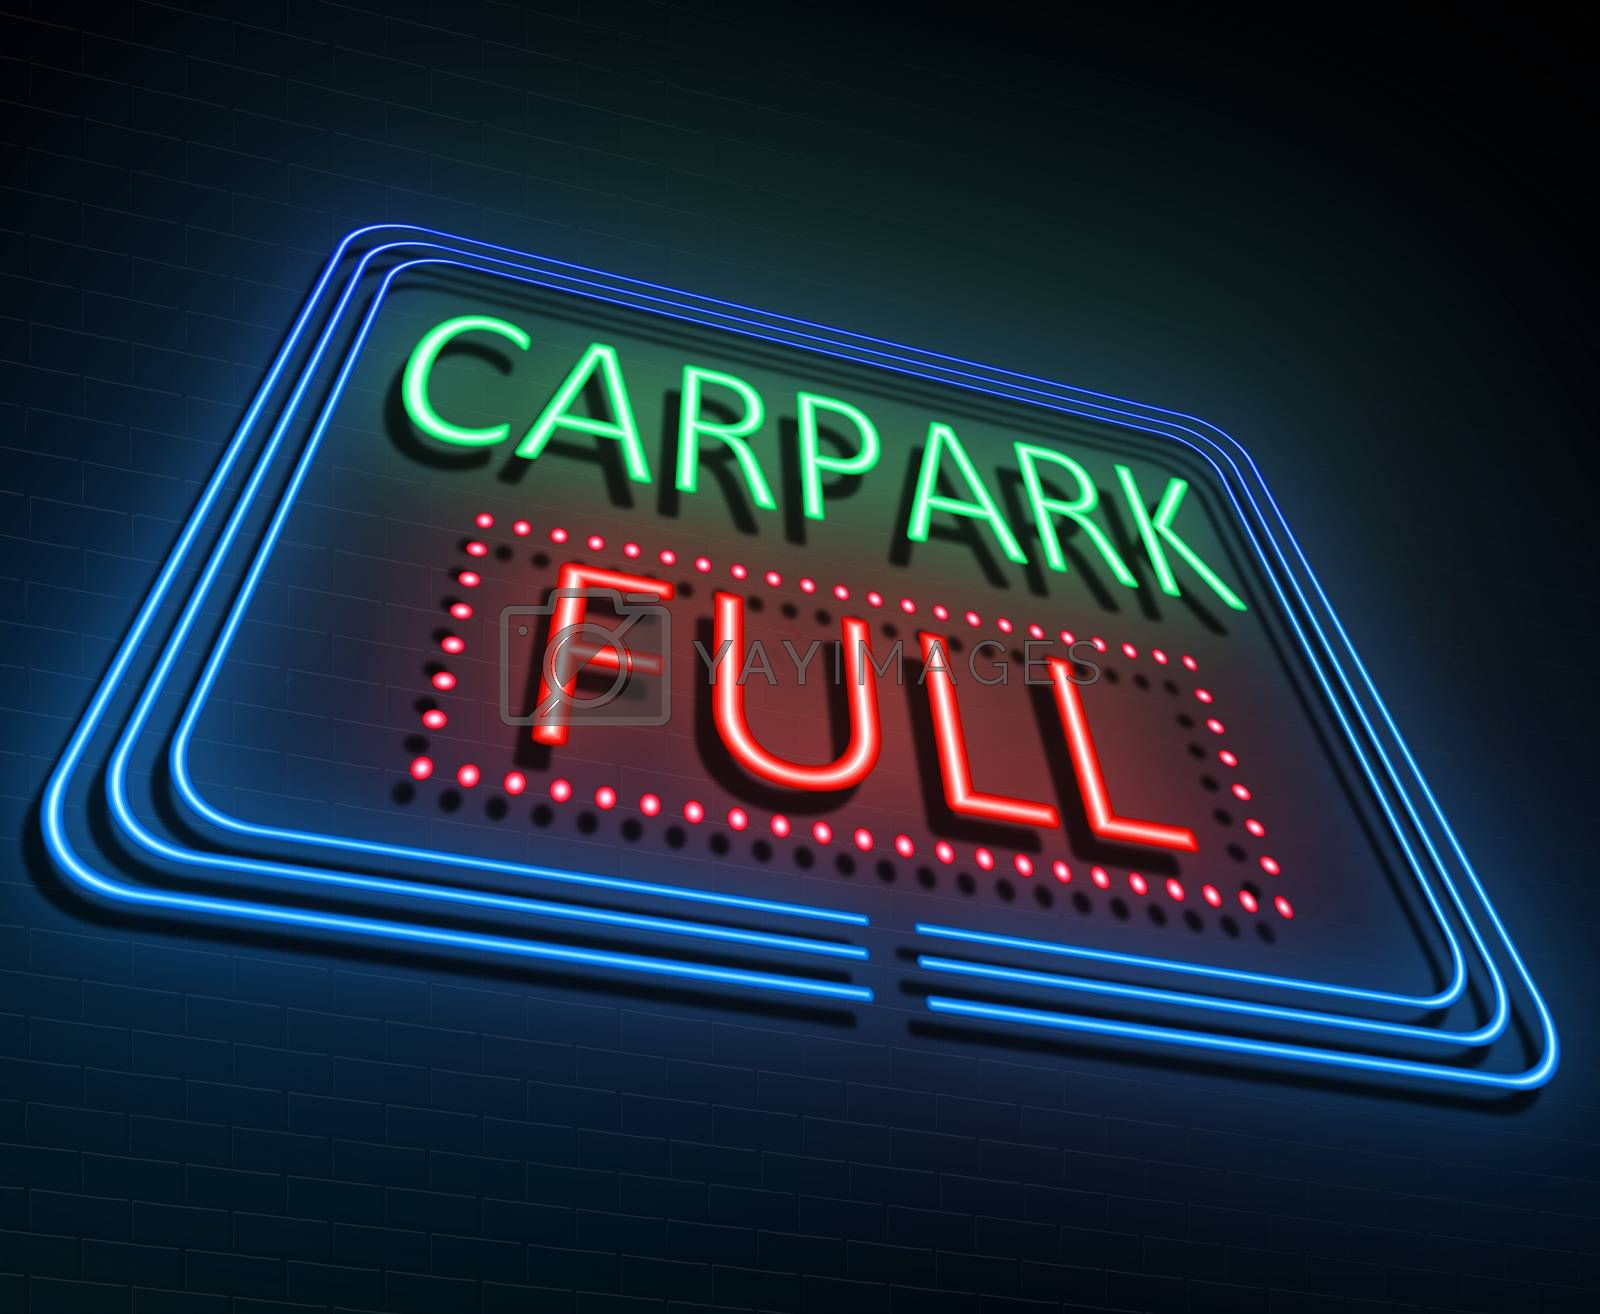 Illustration depicting an illuminated neon sign with a parking concept concept.